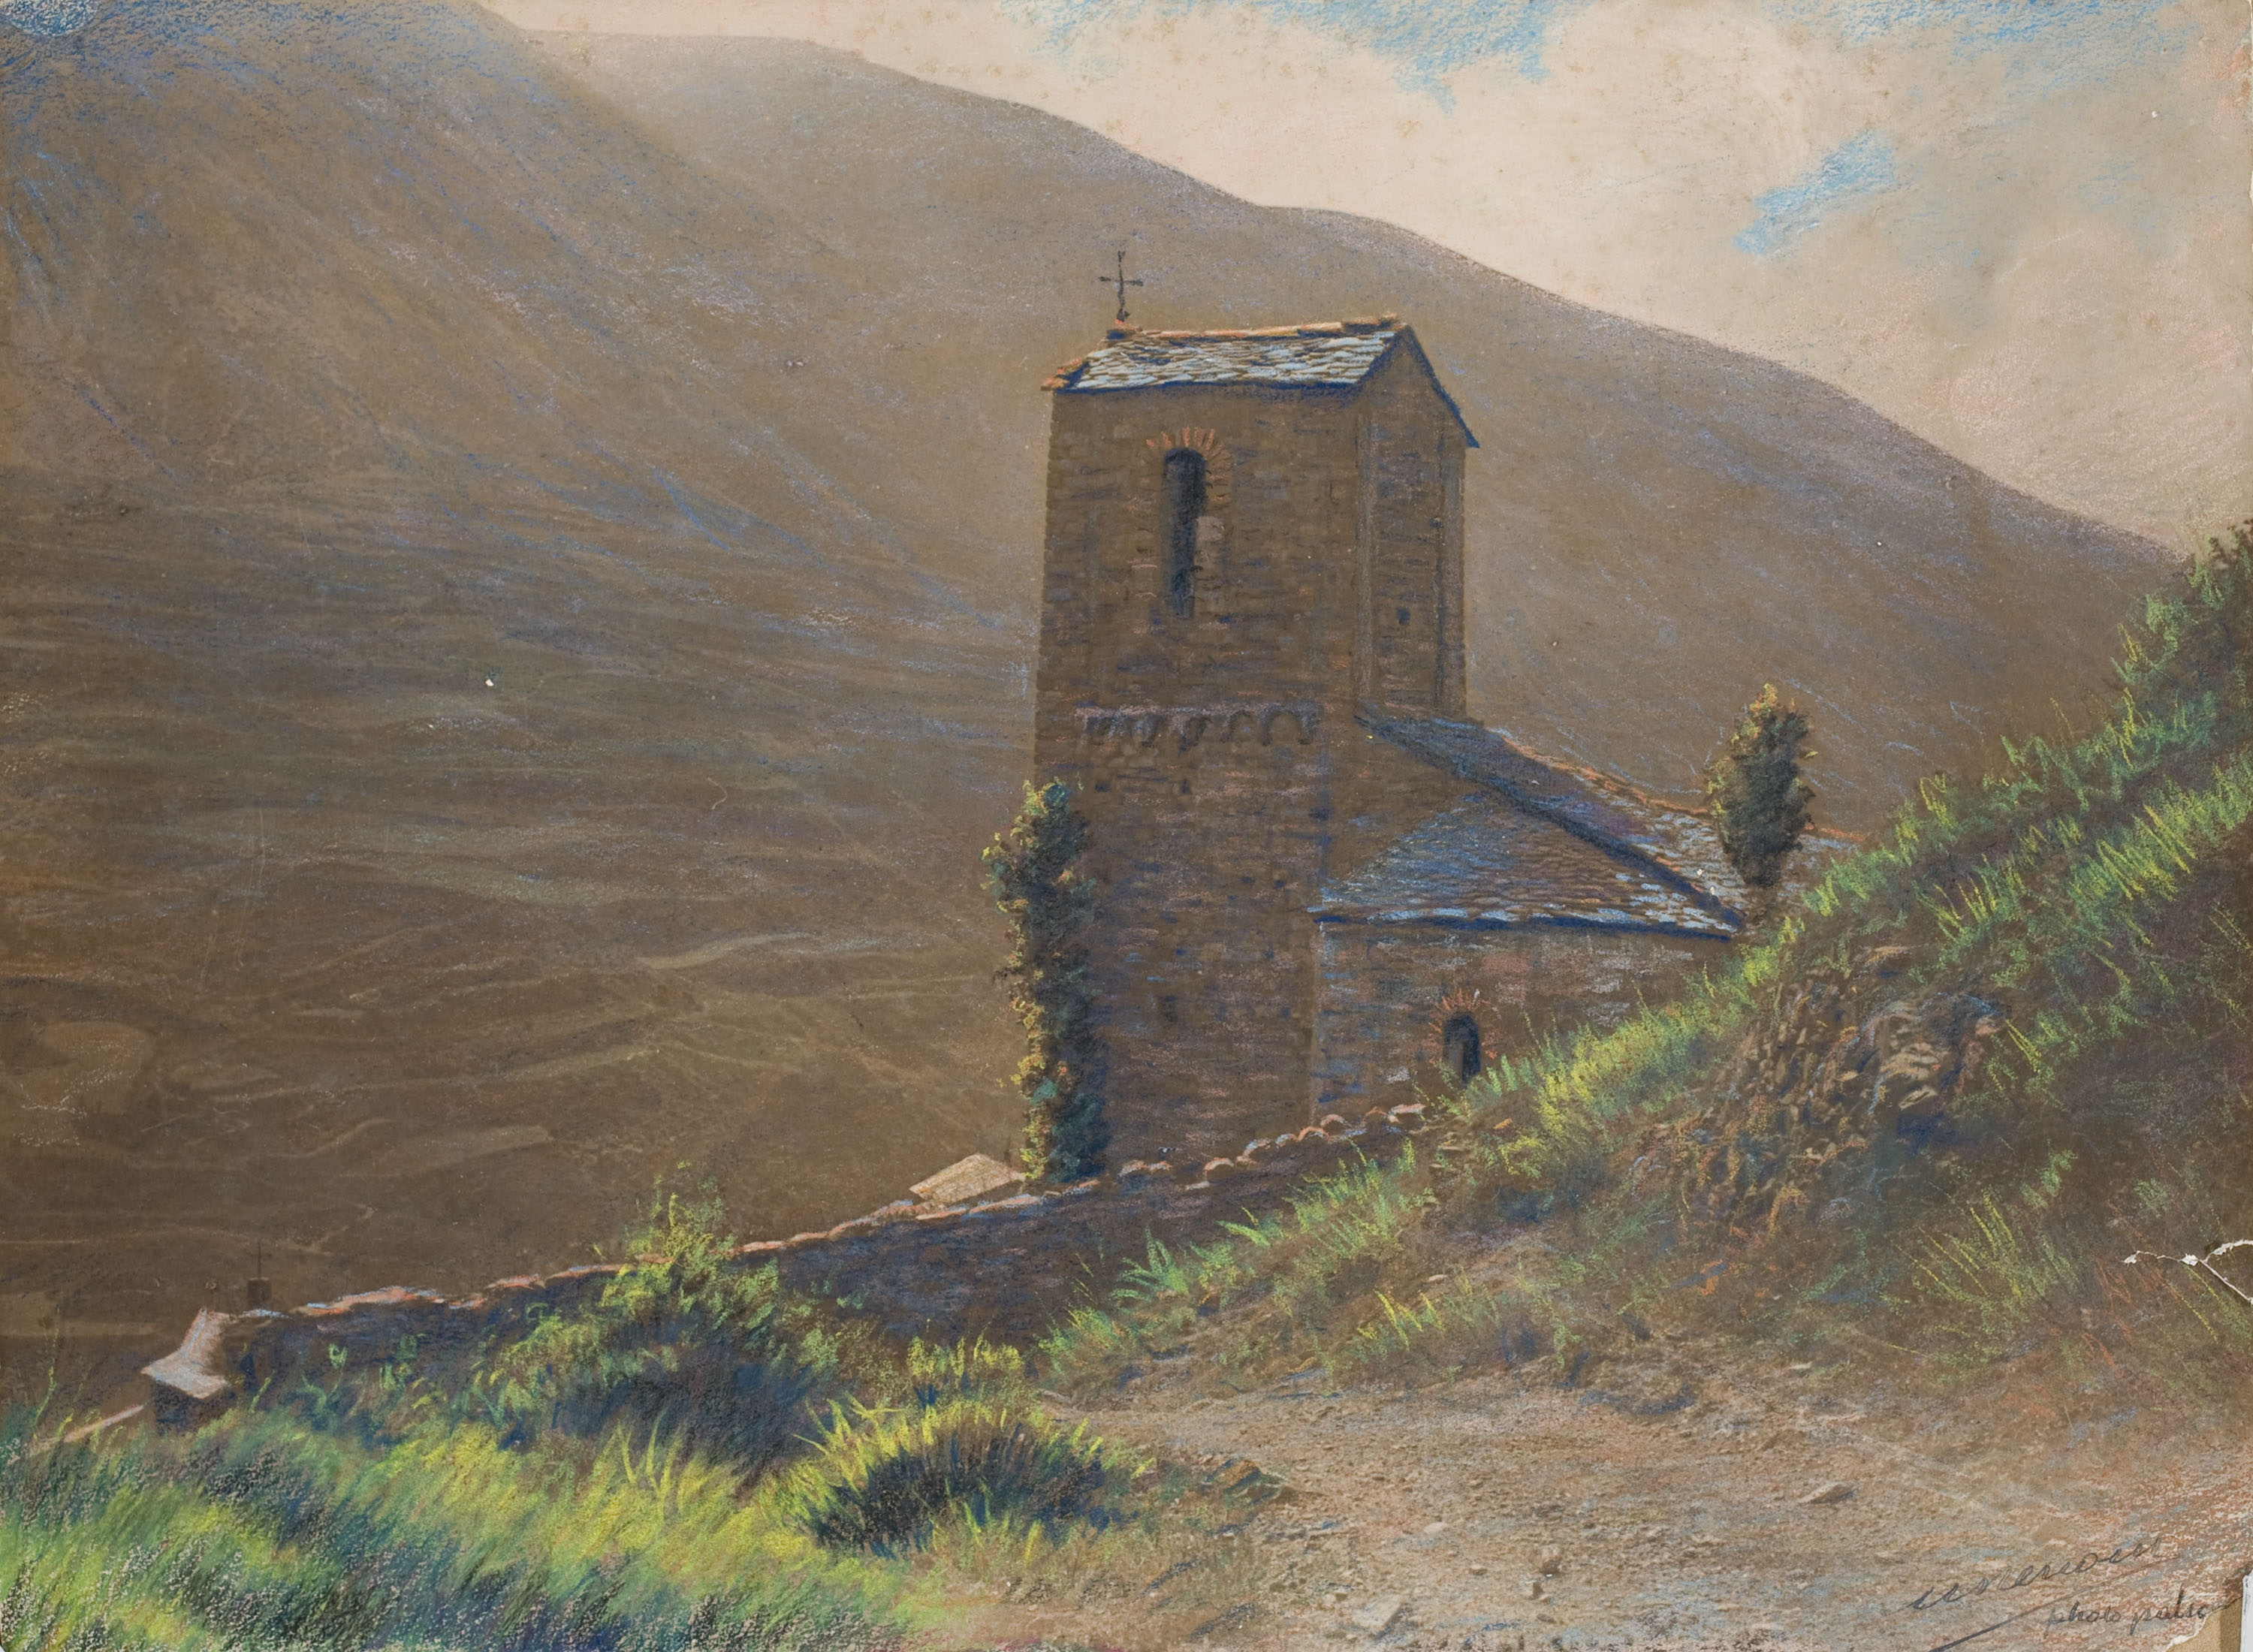 Miquel Renom - Untitled [Landscape with church] - Undated